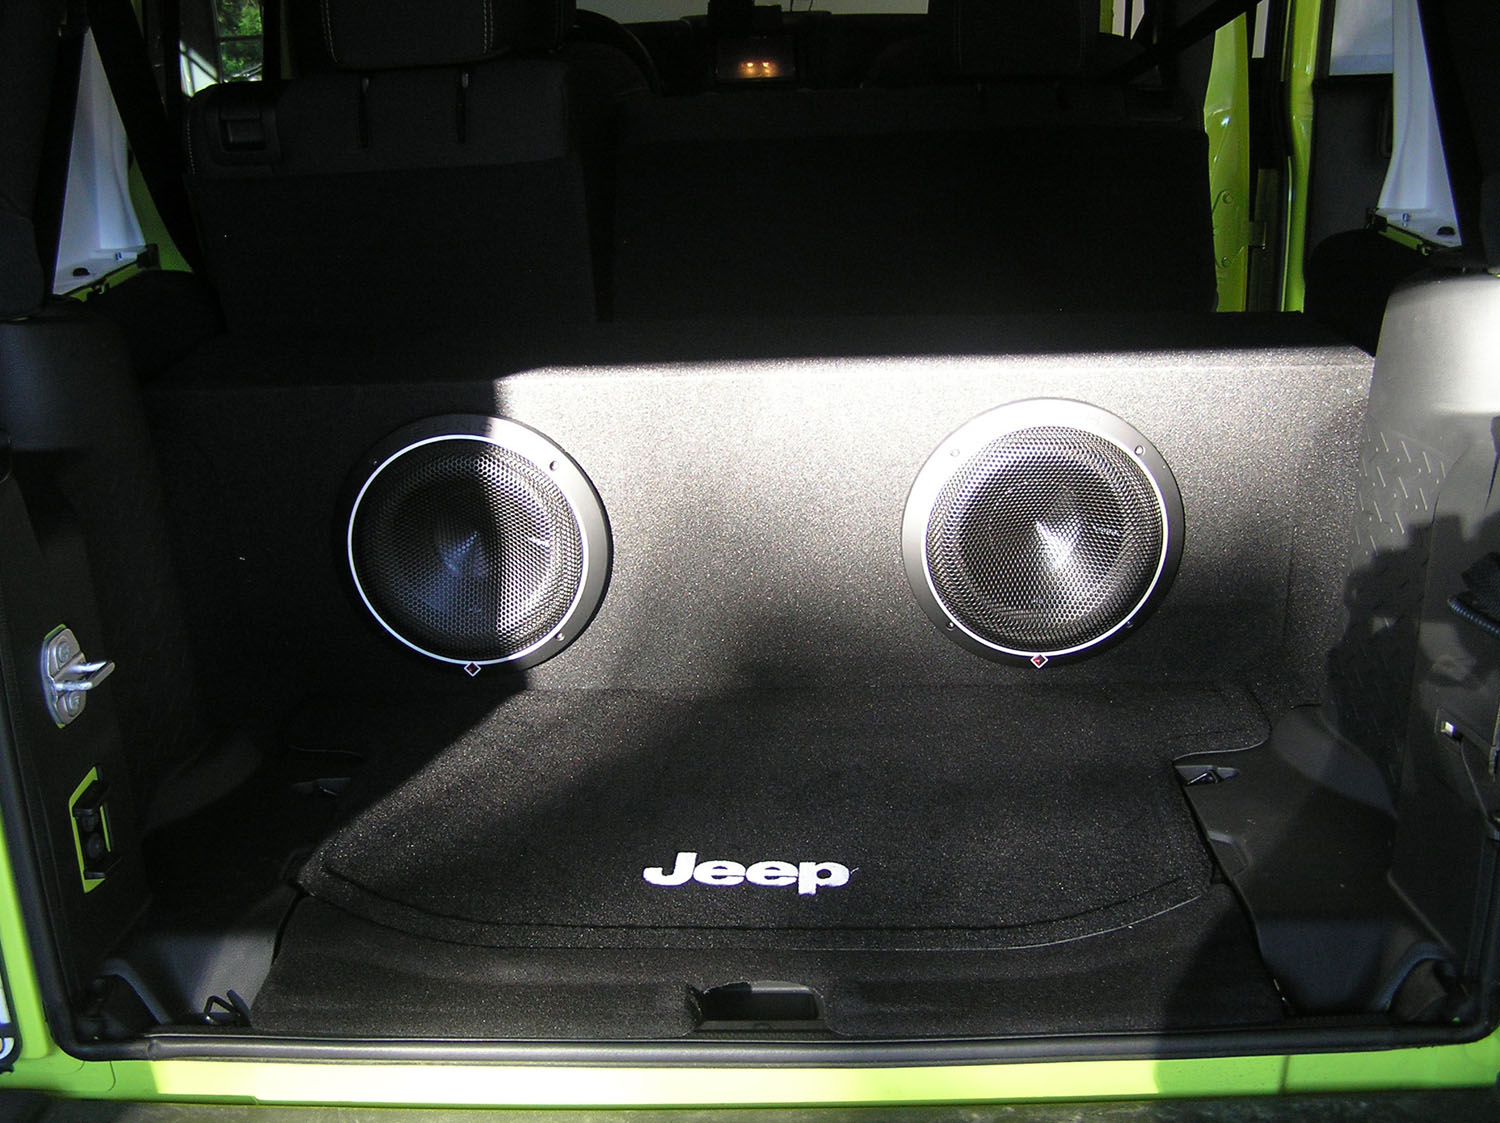 Install Pioneer Avh 4200nex Sub Cam Jeep Jk Wrangler Forum 2002 Liberty Subwoofer Enclosure This Image Has Been Resized Click Bar To View The Full